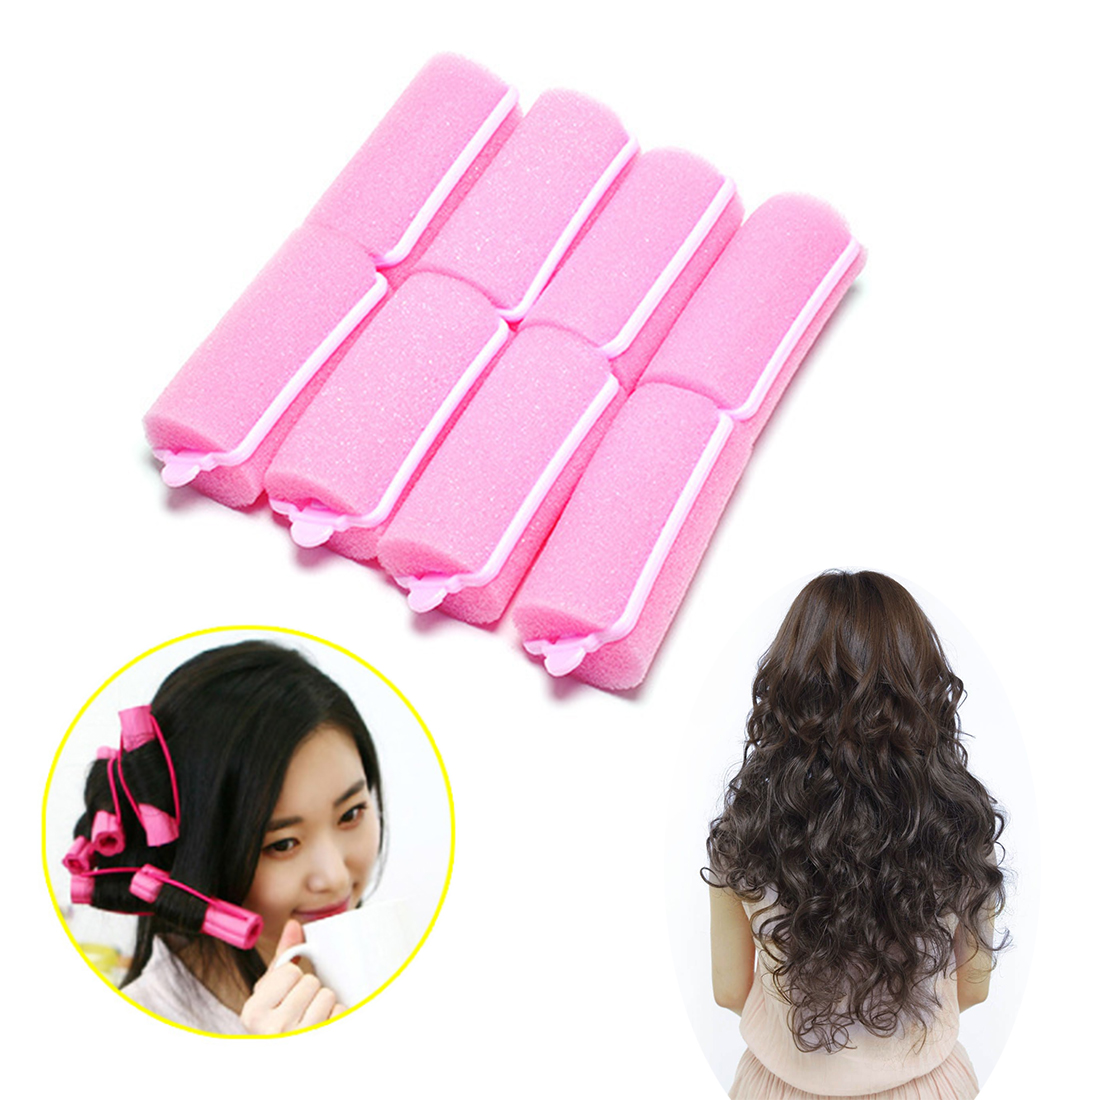 14 Pcs 12pcs 10pcs 8pcs 6pcs Hair Curler Magic Sponge Foam Cushion Hair Styling Rollers Curler Twist Tool for Women Girls in Women 39 s Hair Accessories from Apparel Accessories